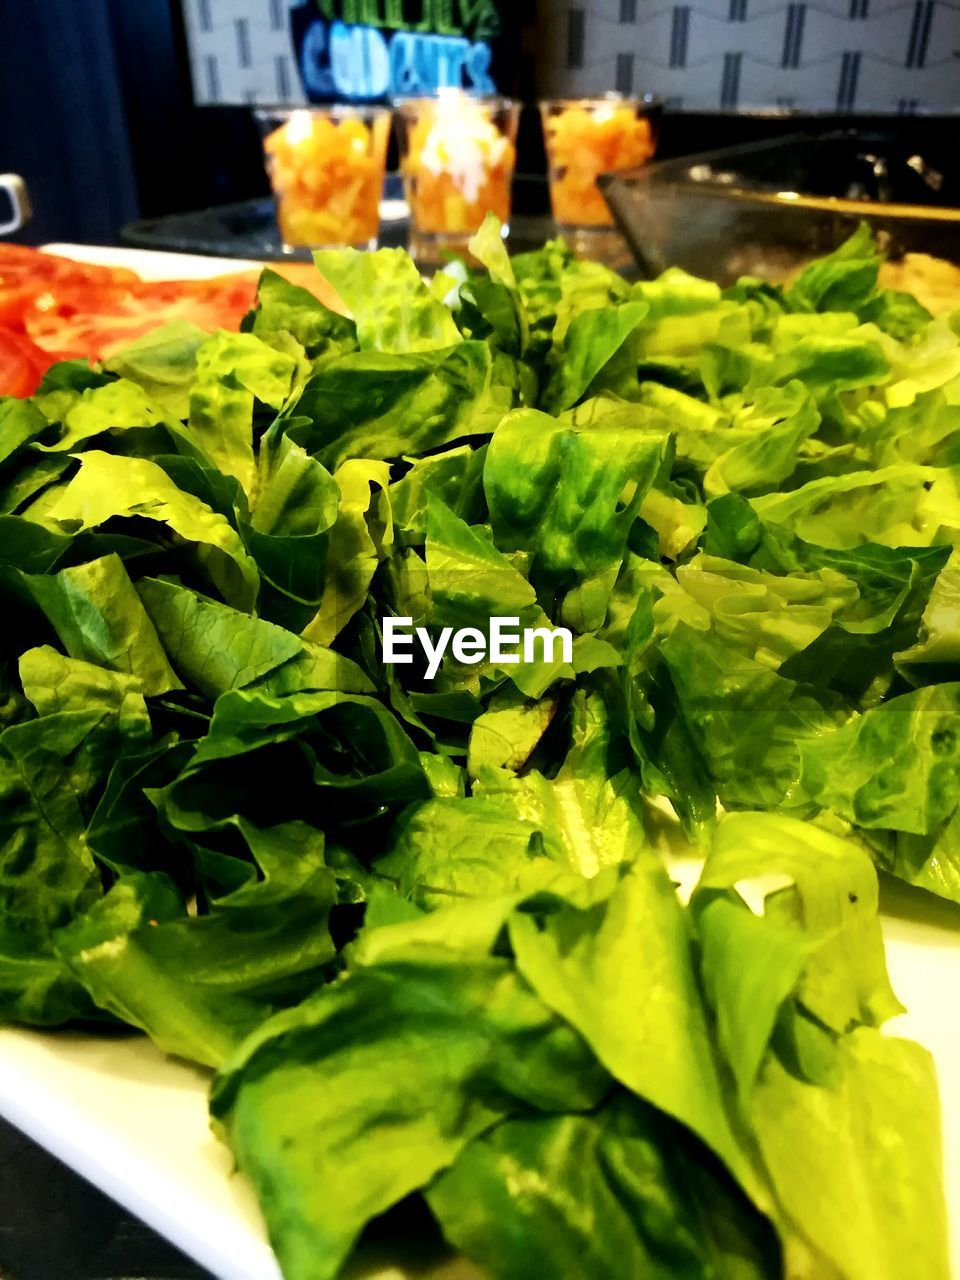 food and drink, food, freshness, healthy eating, vegetable, wellbeing, green color, close-up, indoors, no people, green, lettuce, still life, salad, raw food, organic, leaf vegetable, selective focus, plant part, leaf, vegetarian food, herb, chopped, tray